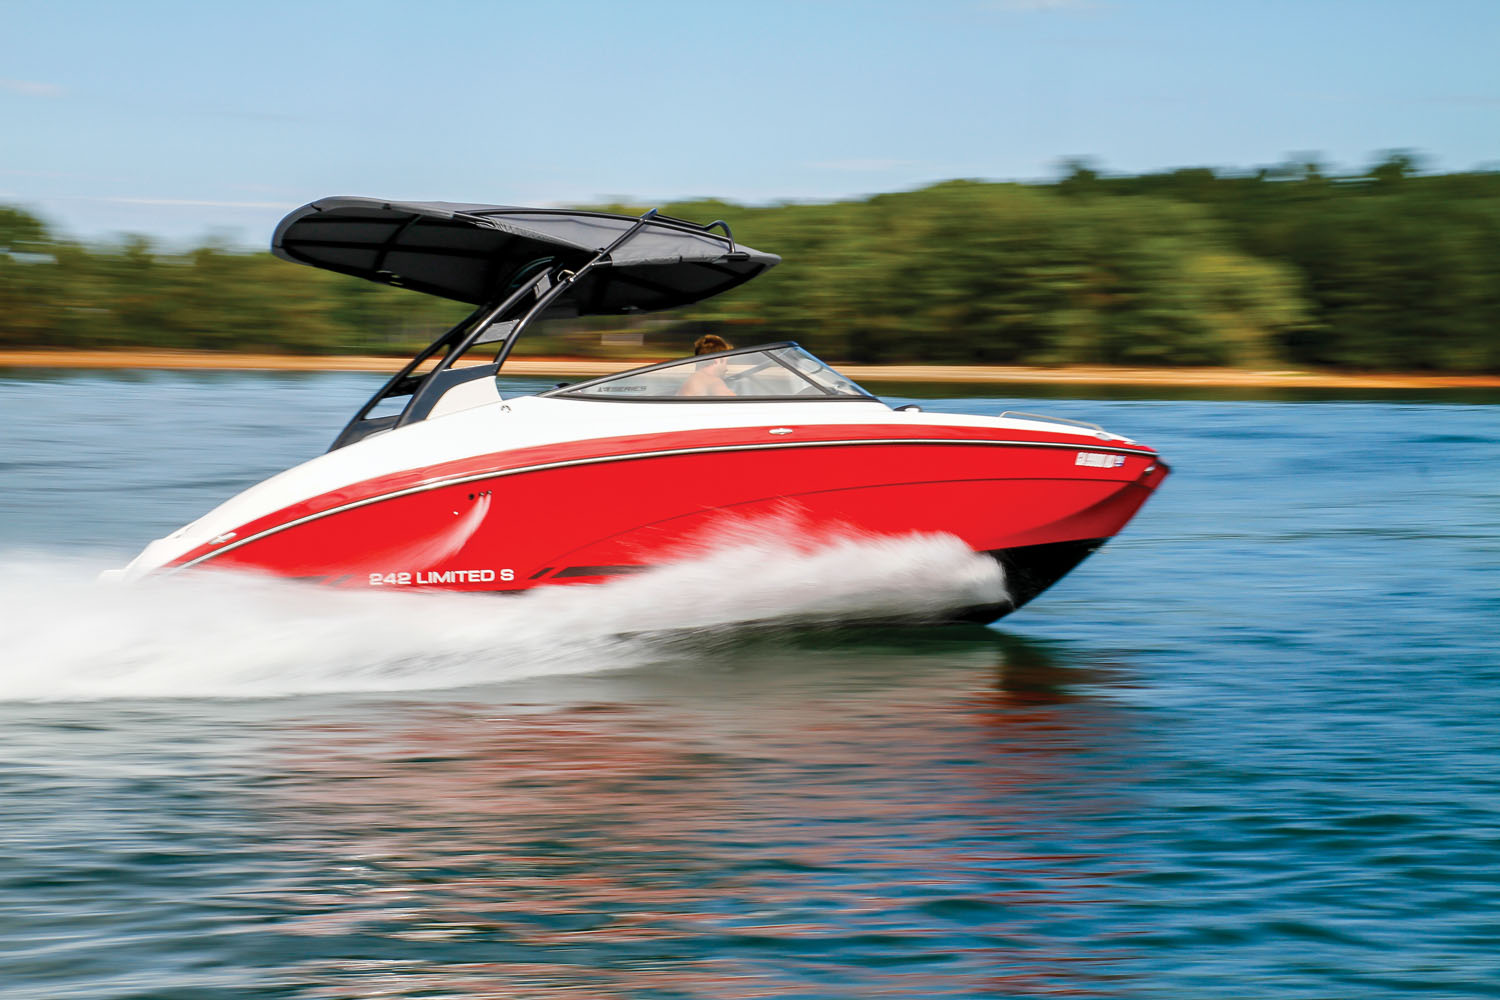 Pictures of Yamaha 242 Limited S Boat Covers